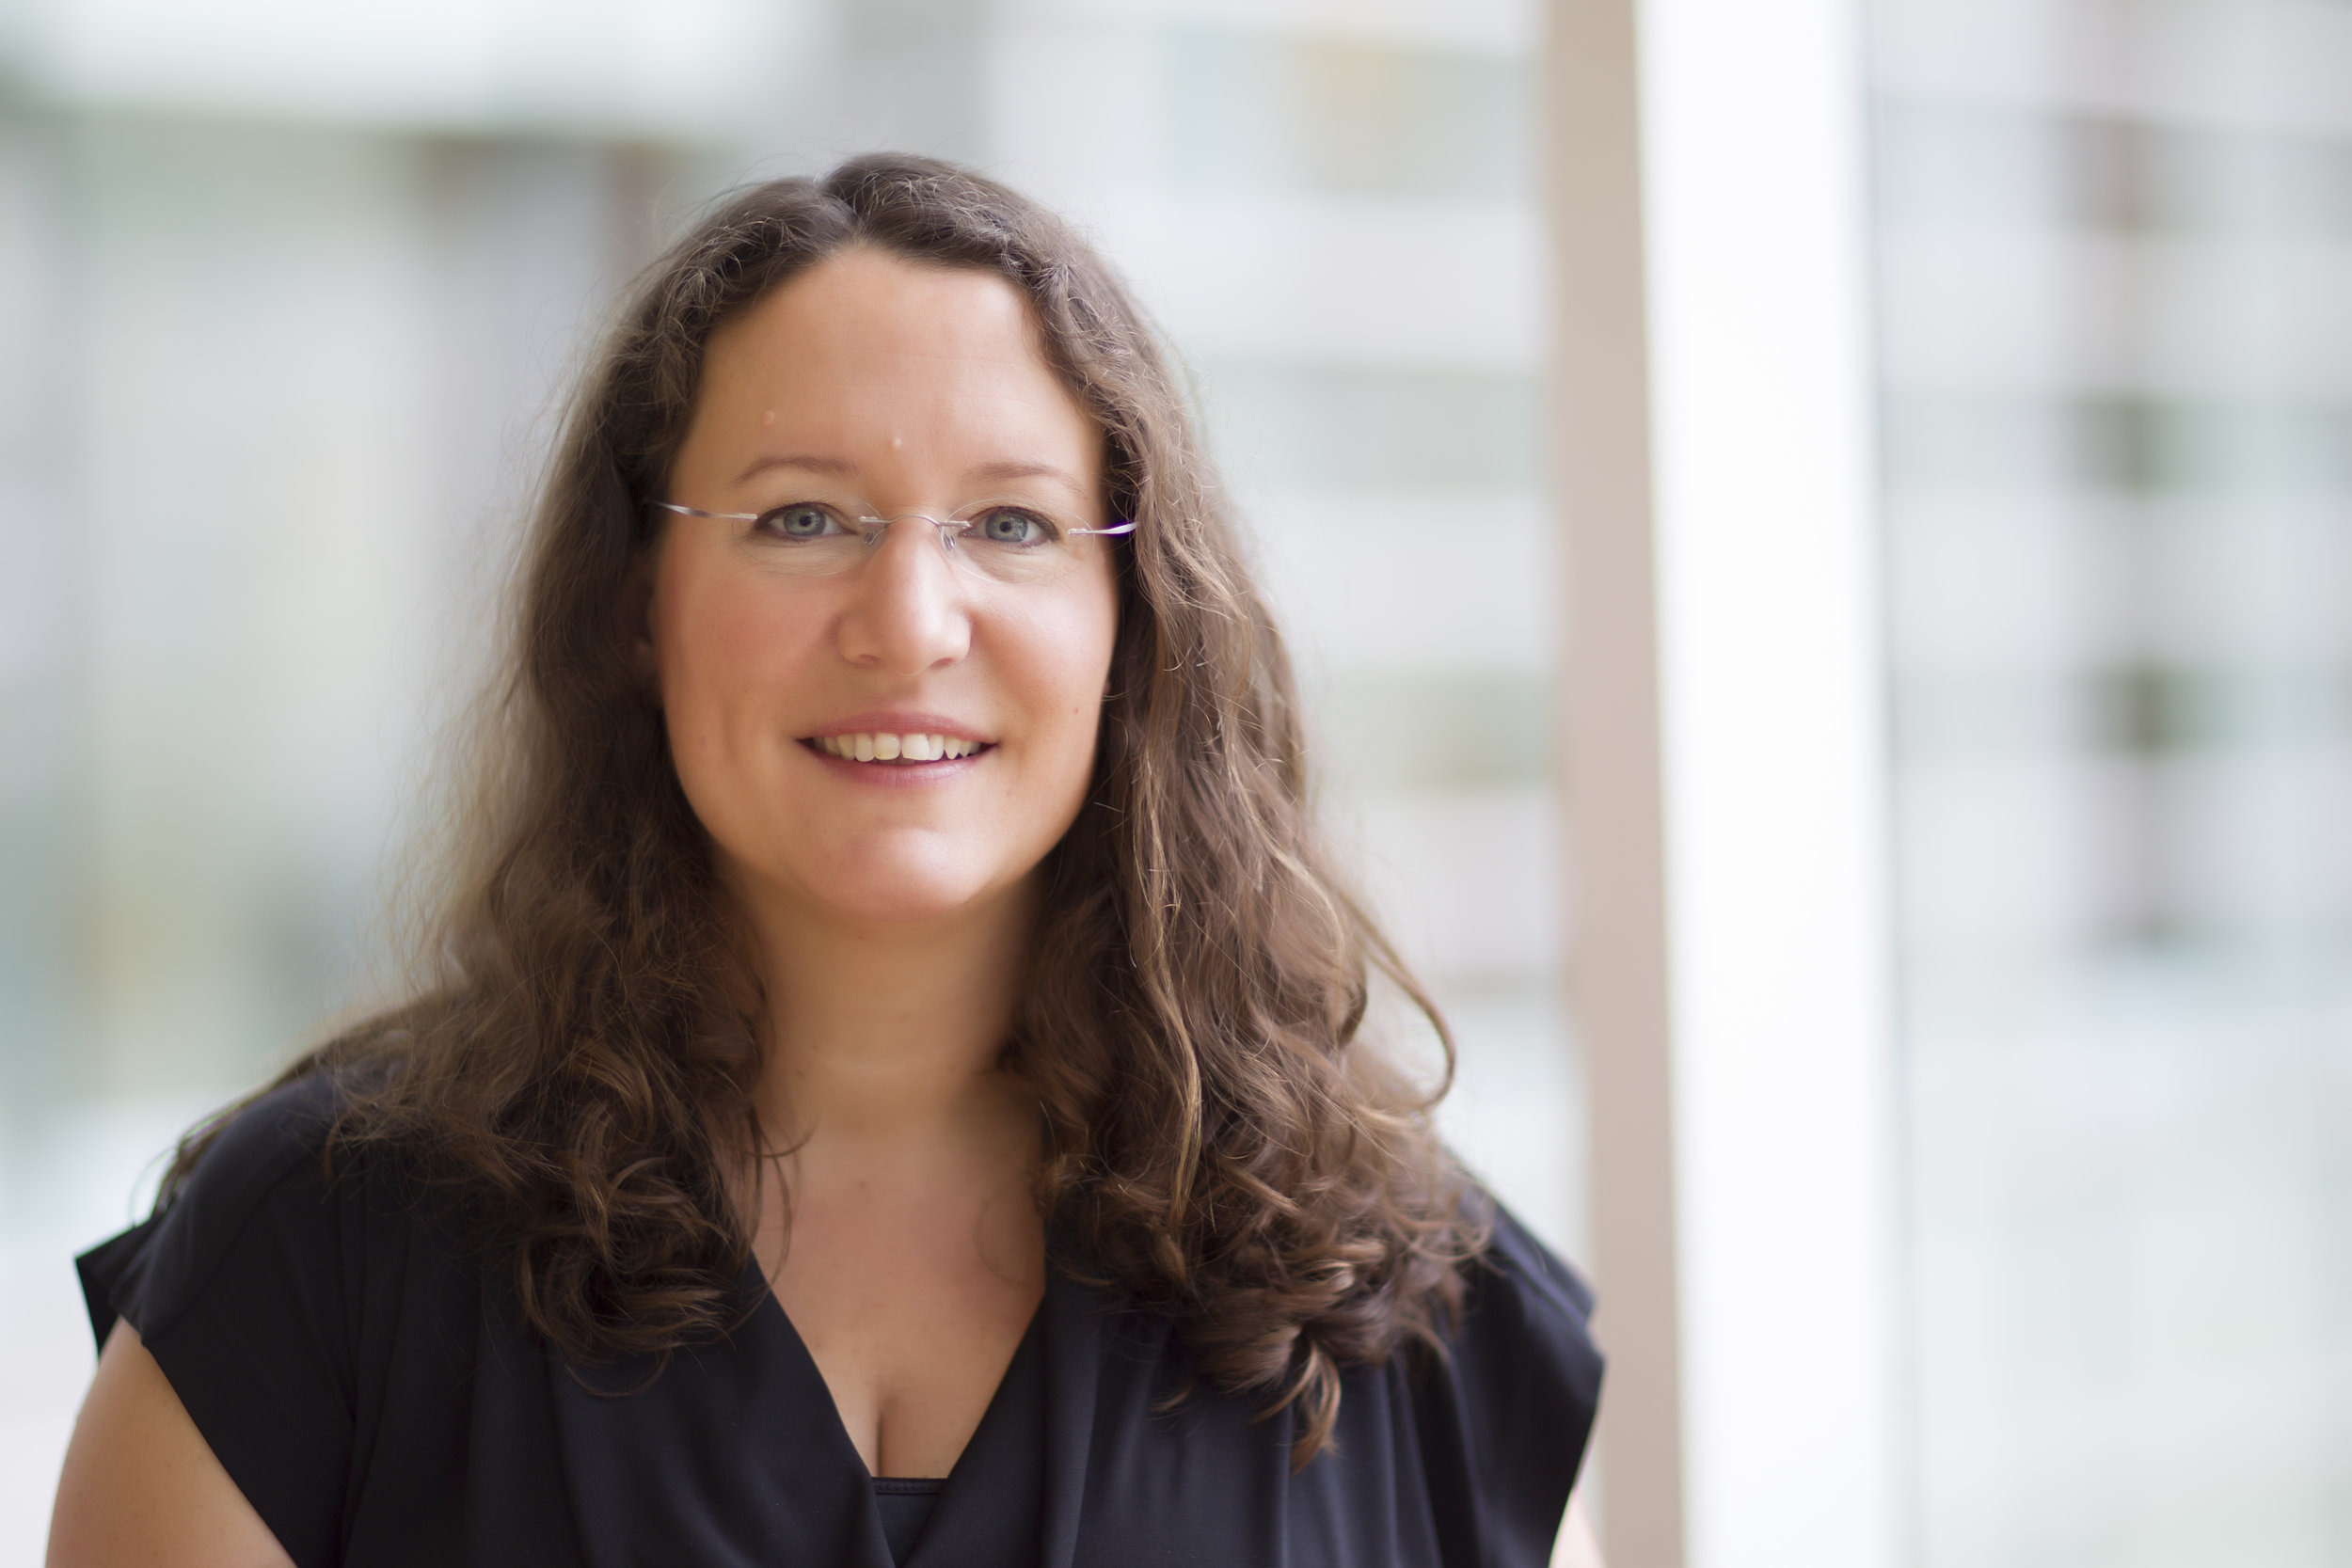 Liza Makowski - Professor at UTHSC studying immune cells in chronic diseases such as obesity and cancer — with a focus on macrophages